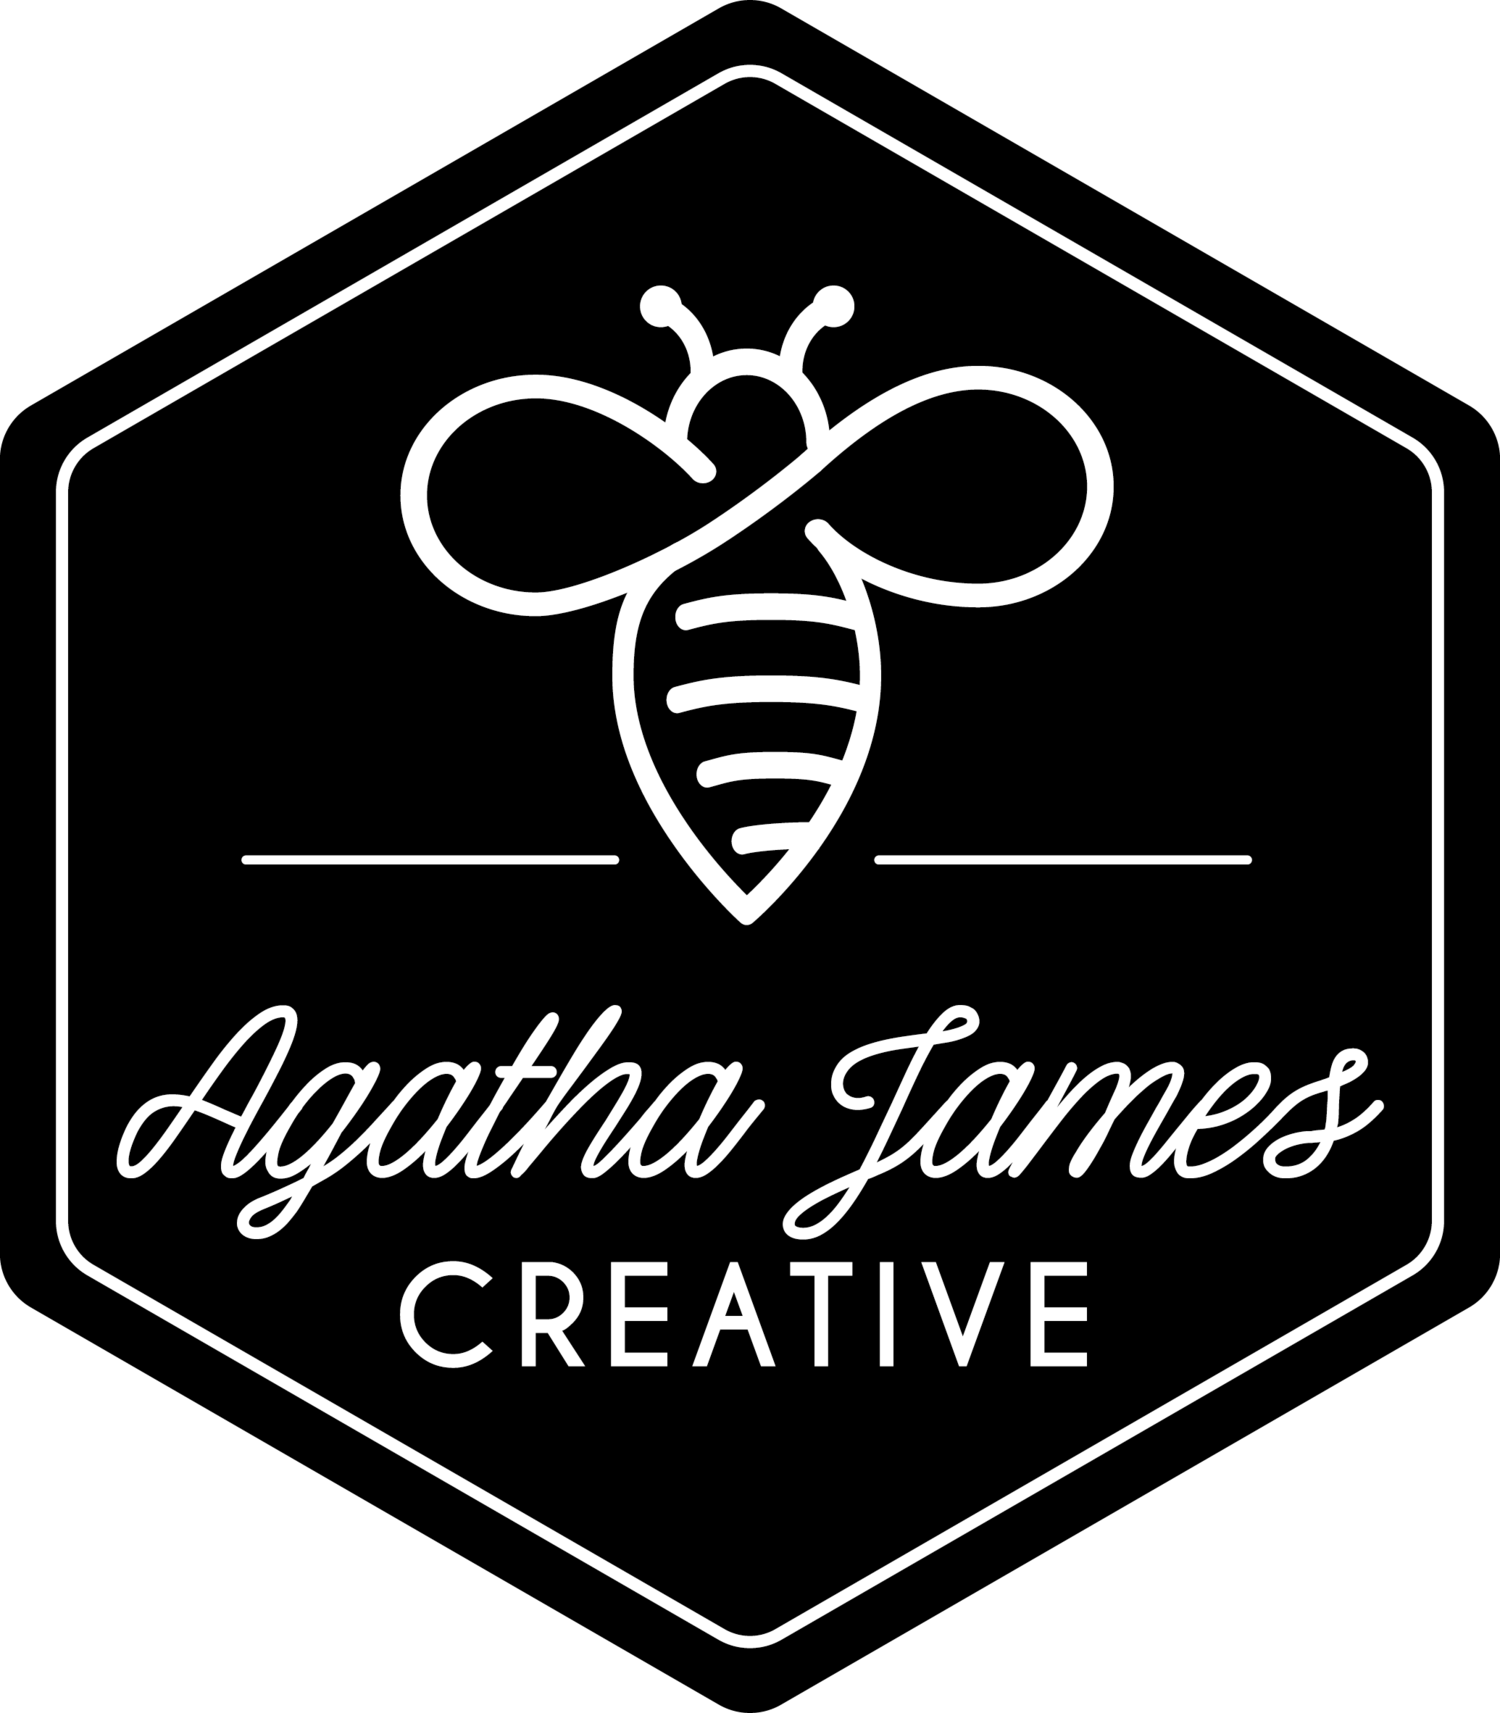 Agatha James Creative